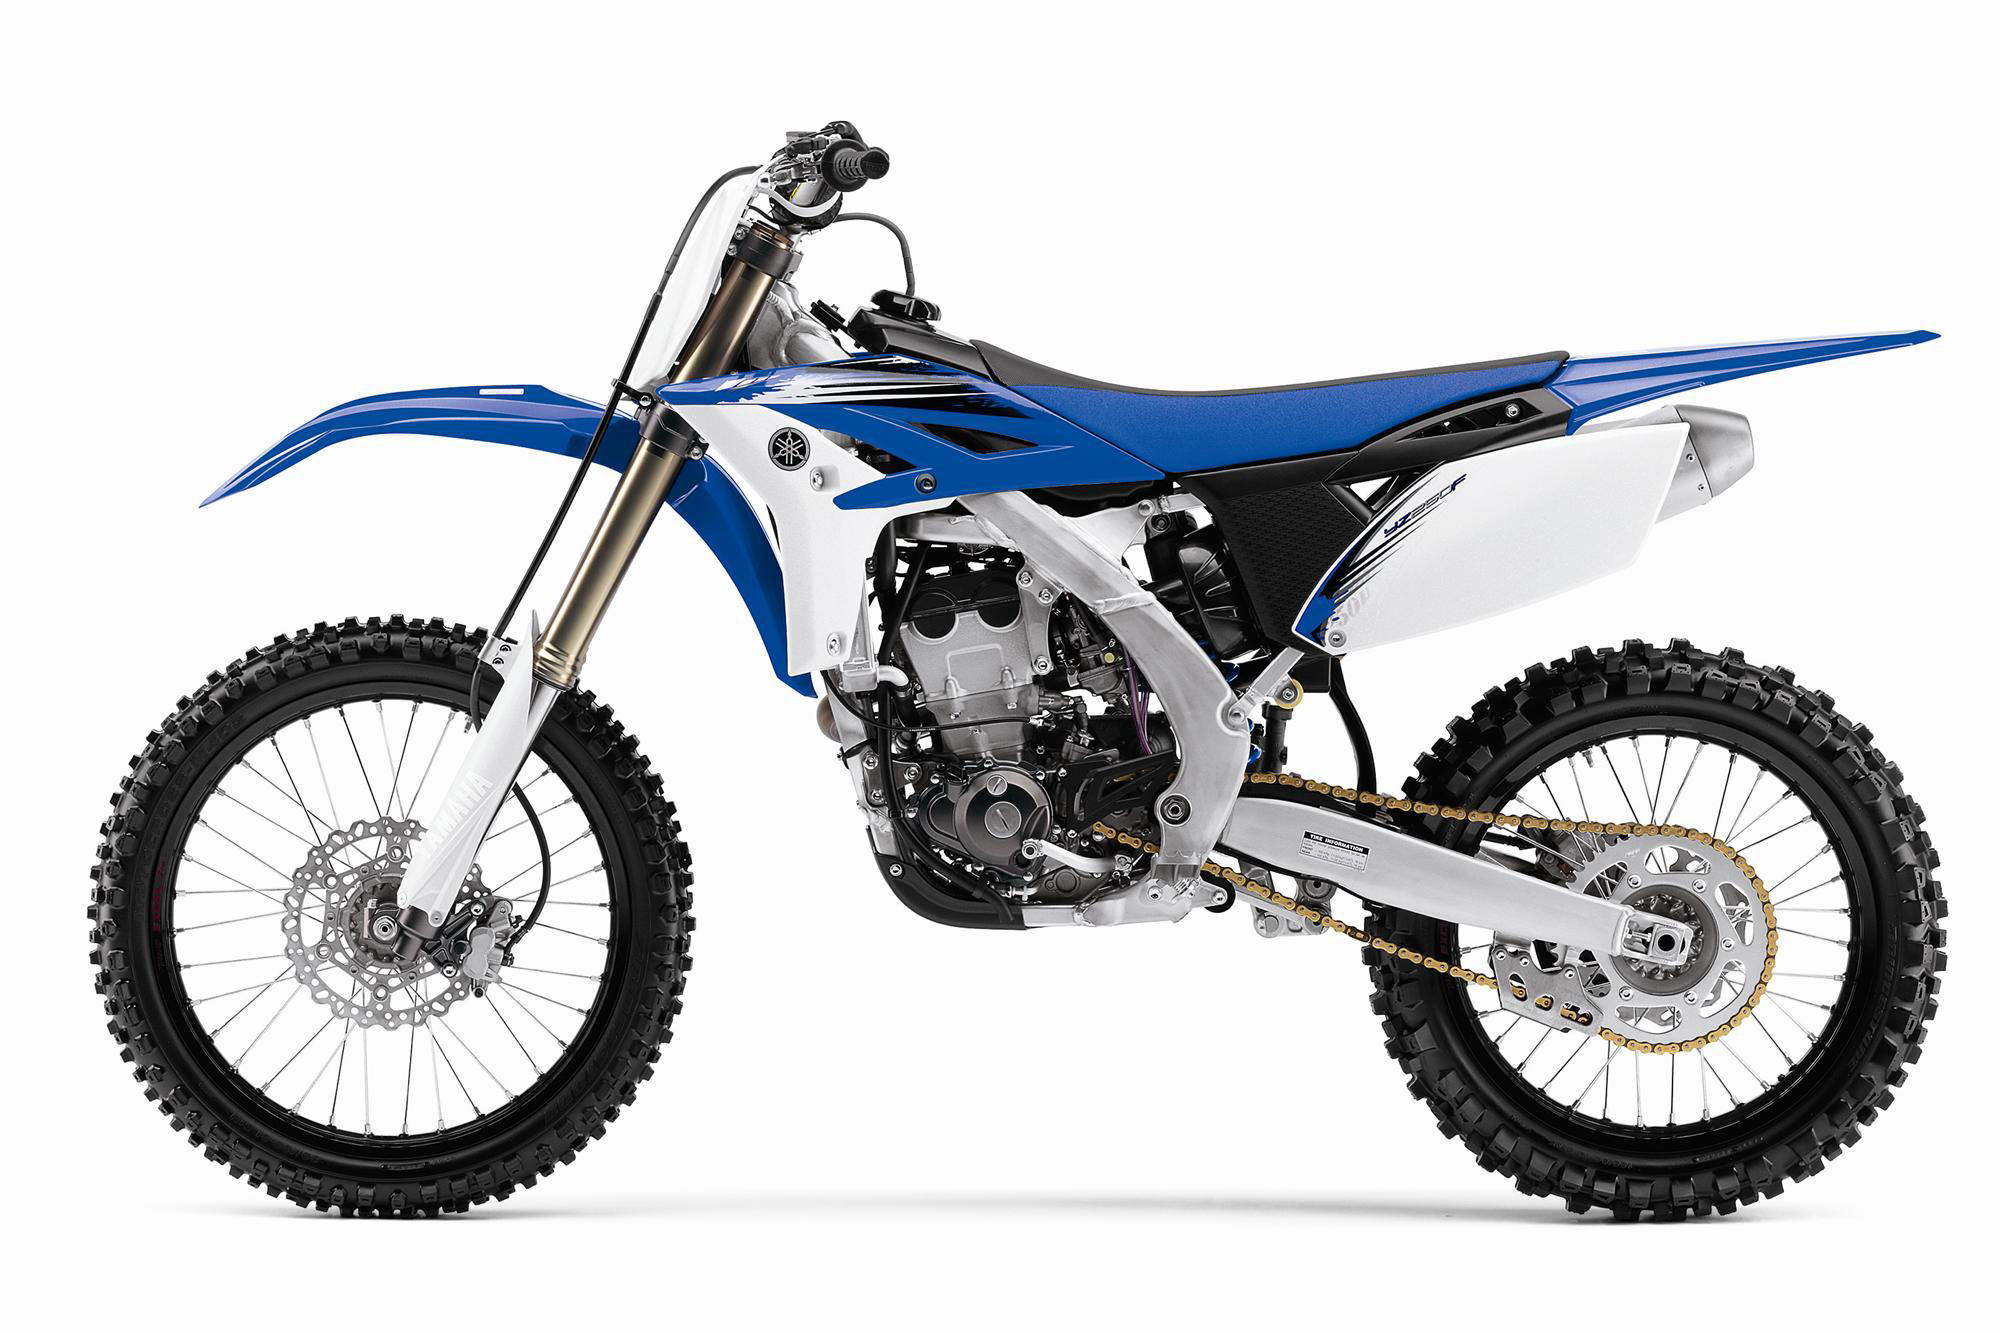 2012 yamaha yz 250 f moto zombdrive com. Black Bedroom Furniture Sets. Home Design Ideas